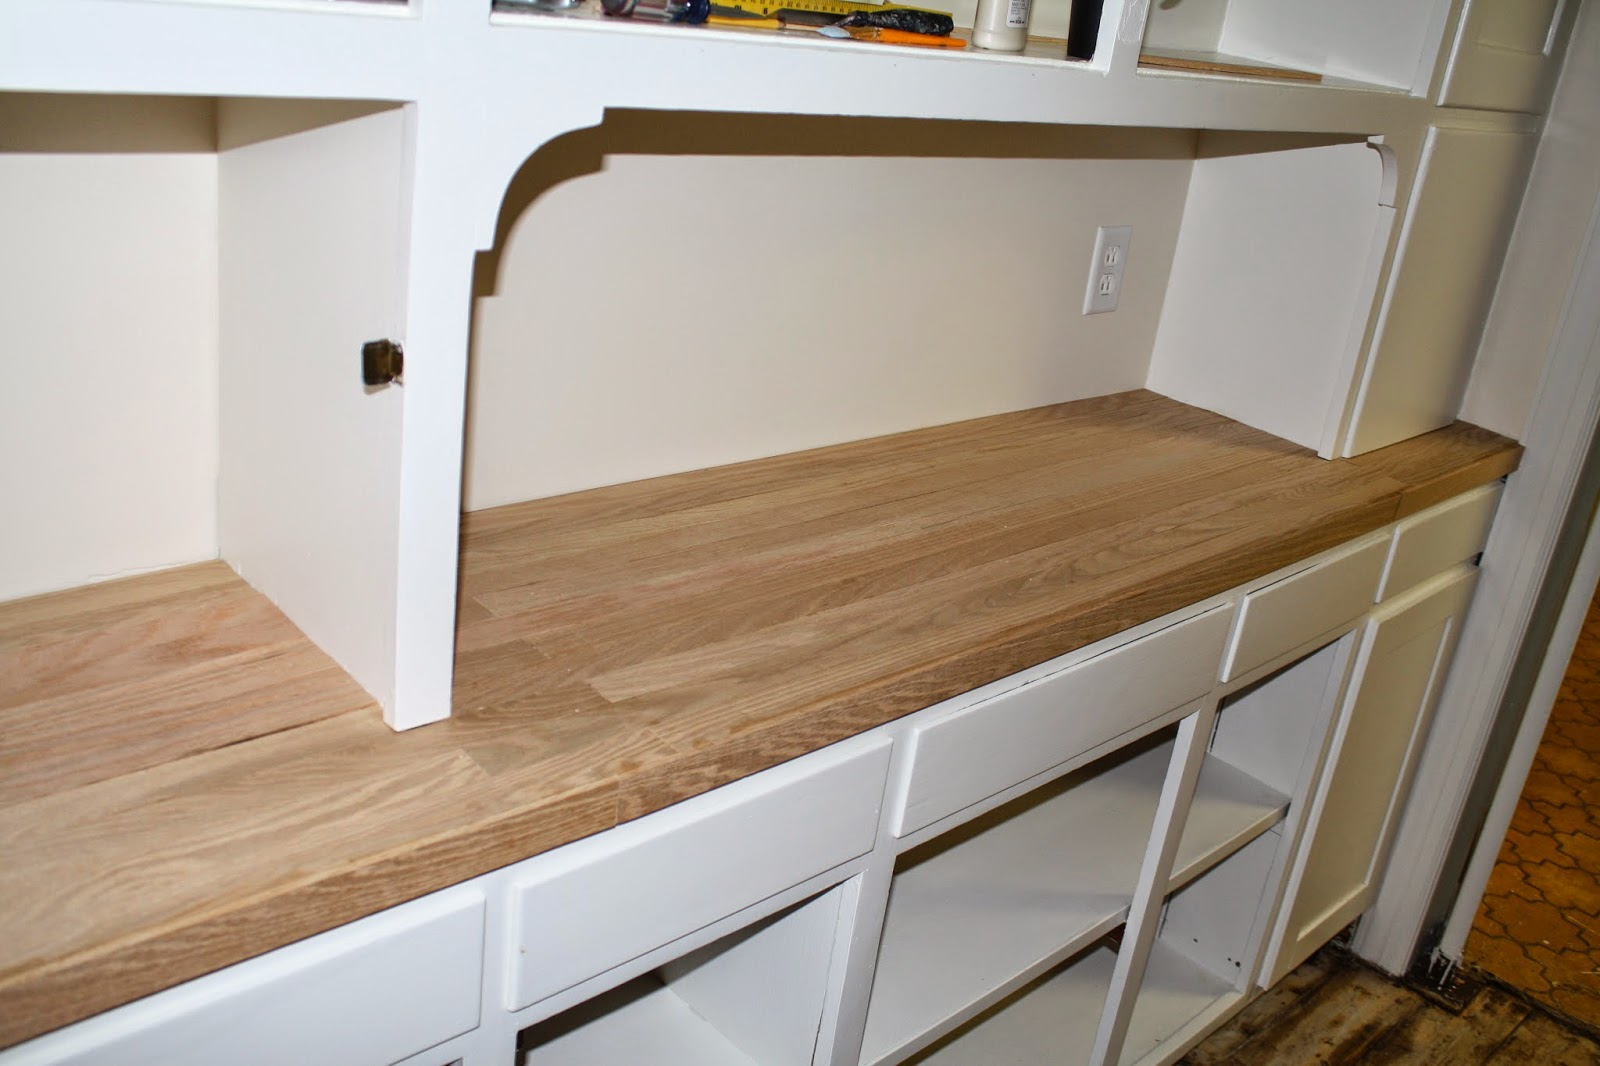 Converting laminate counters to oak